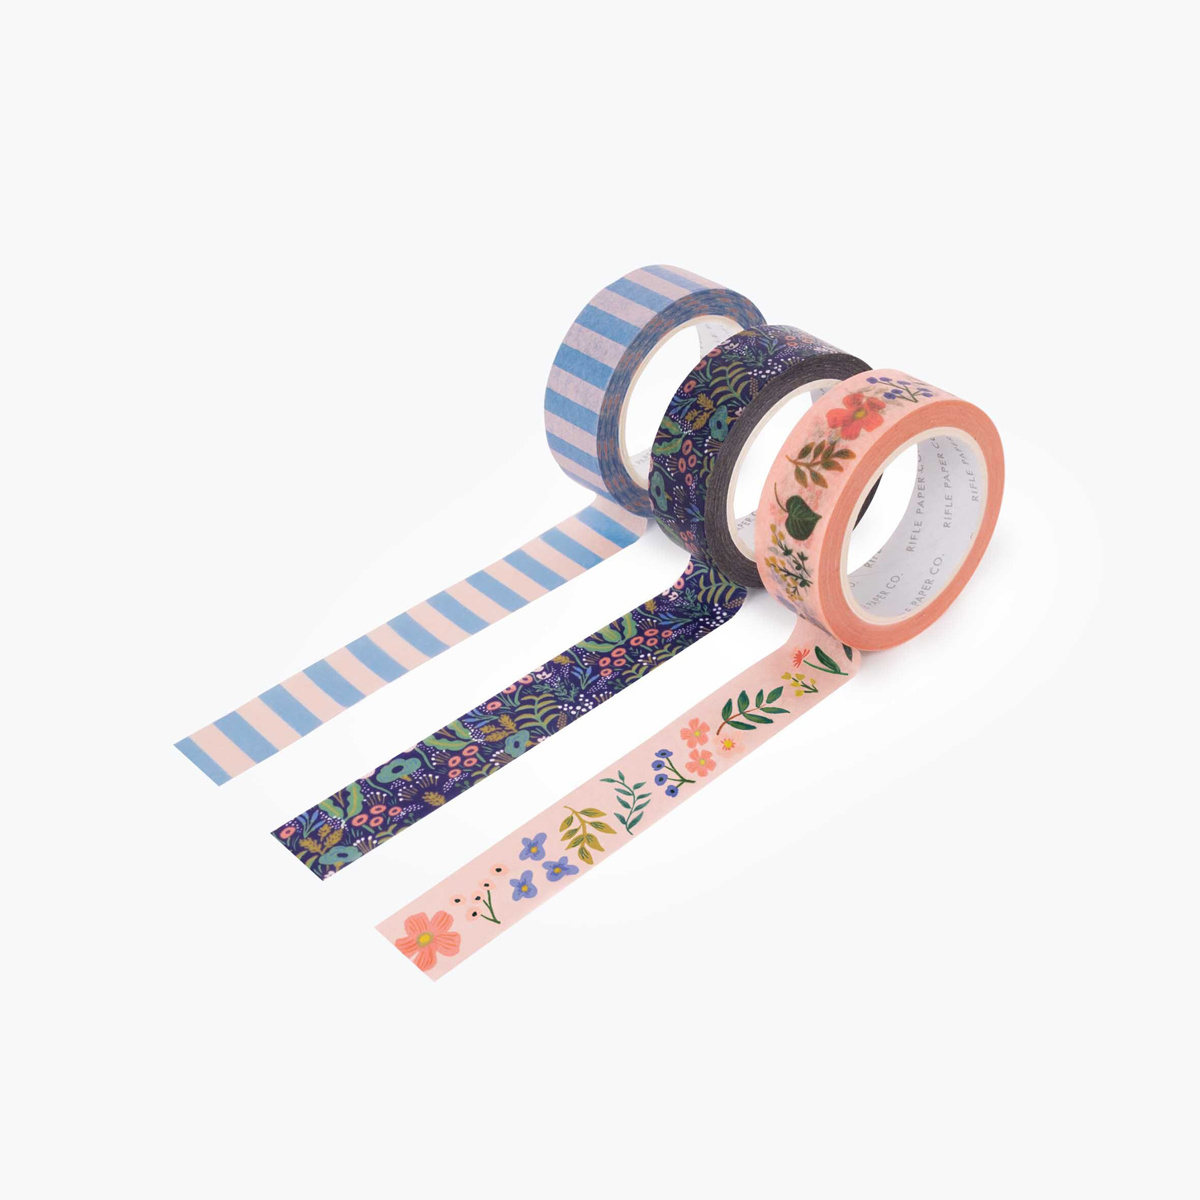 Rifle Paper Co. Tapestry Paper Tape, set of 3